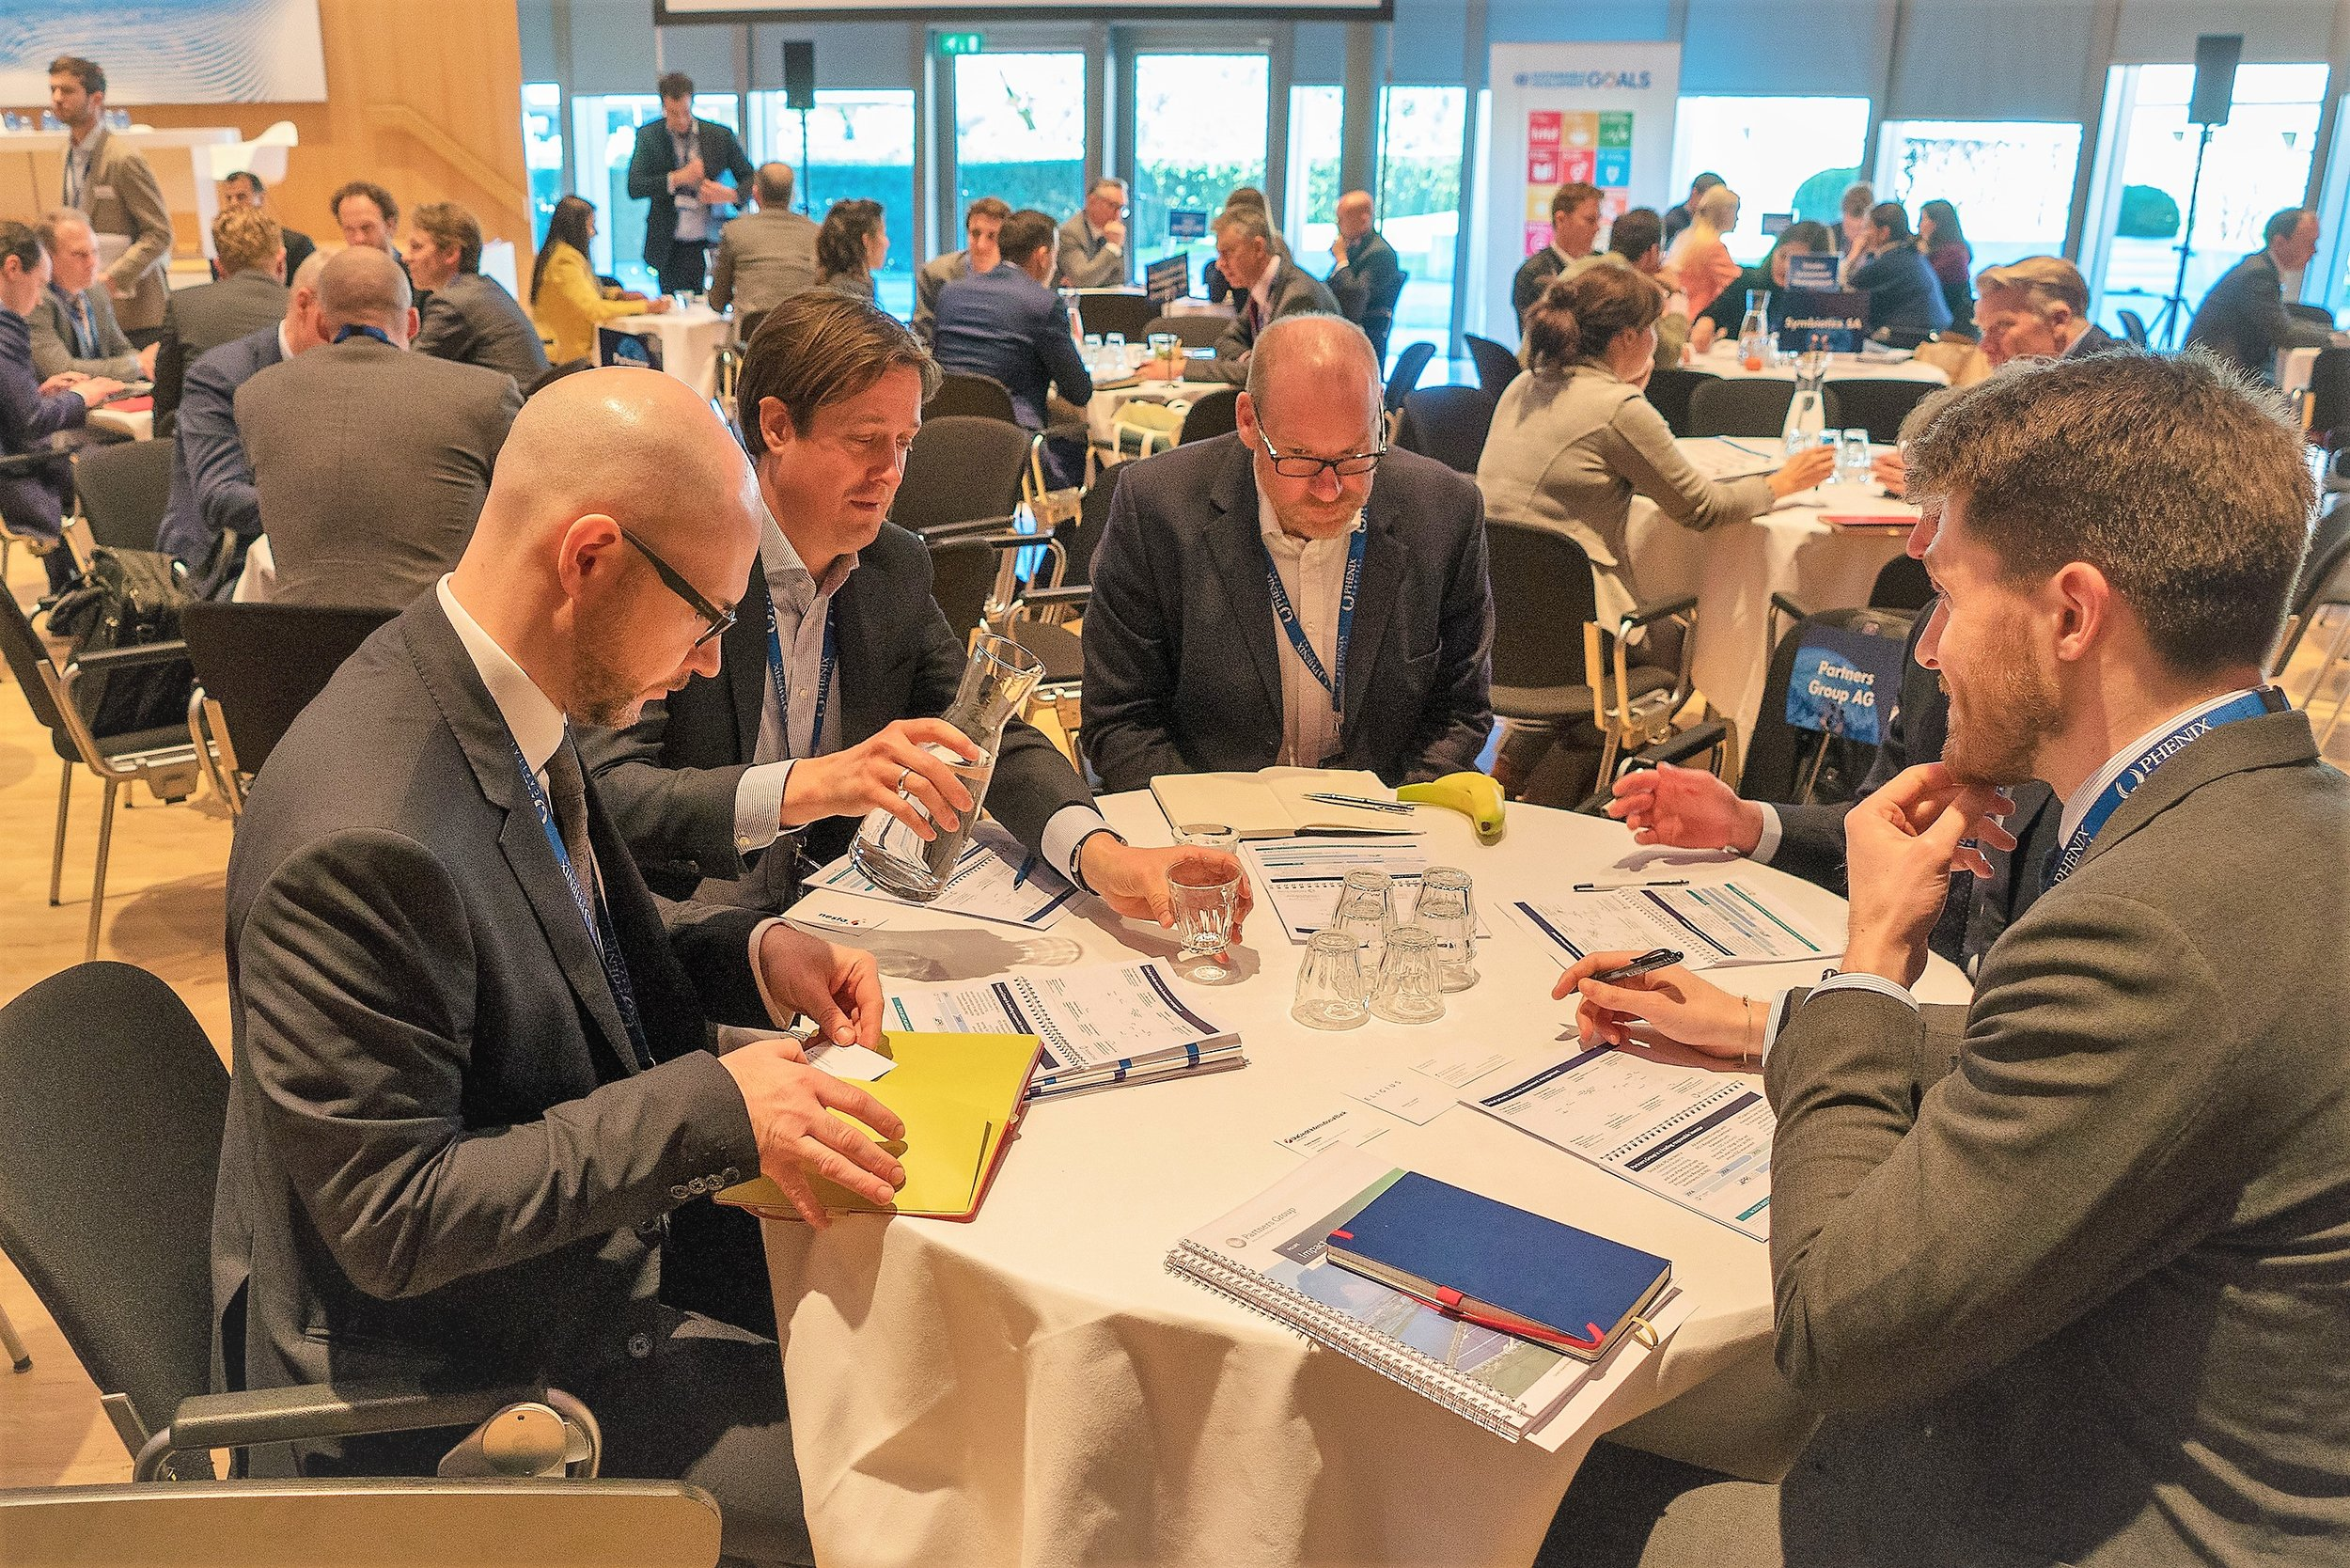 Impact Summit Europe, InvestorConnect for institutional investors in impact investing